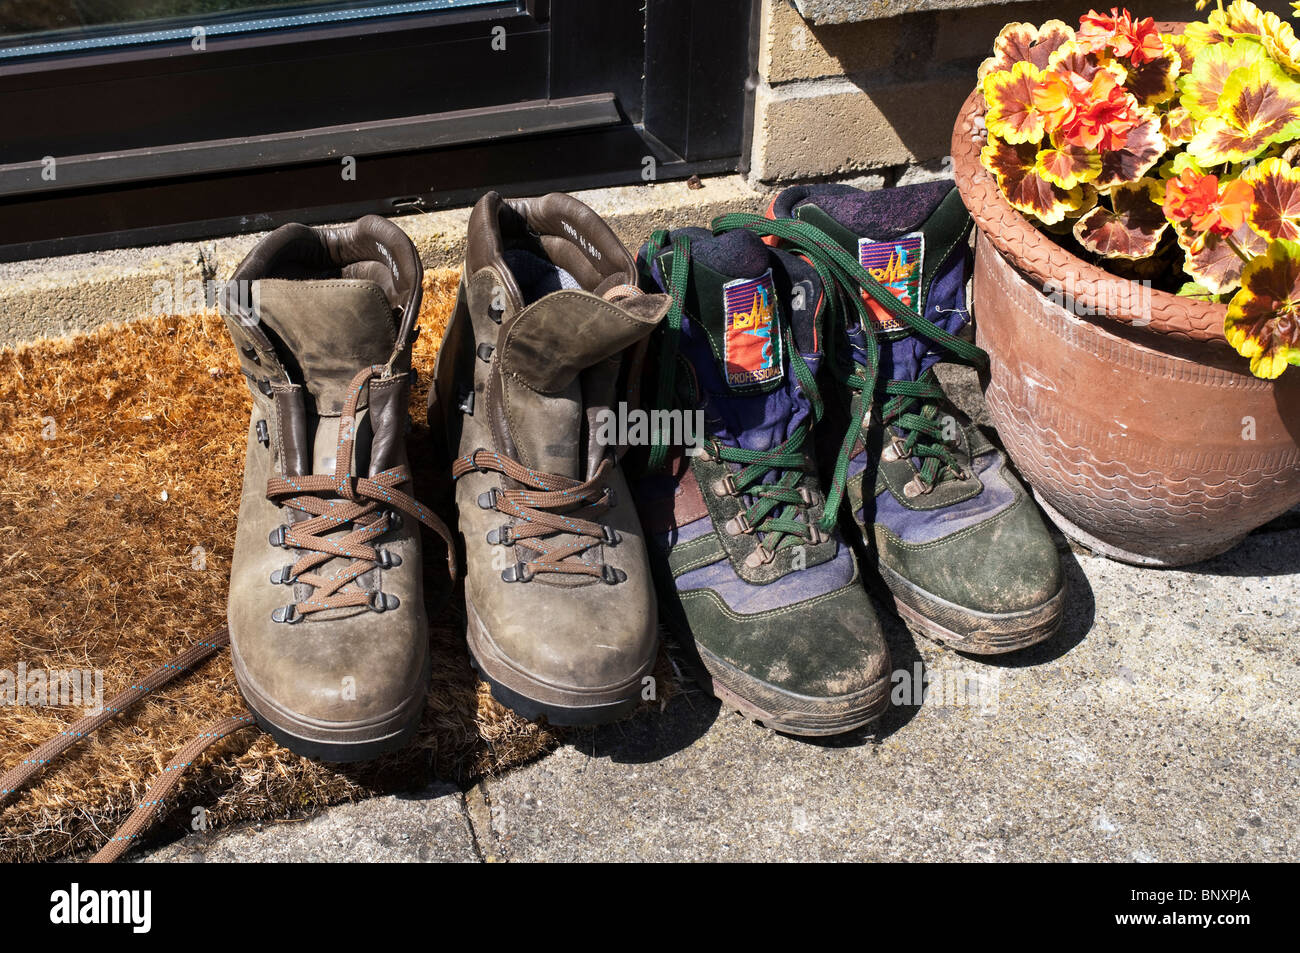 97f8694b48b Old used hiking boots on the doorstep outside in the sun Stock Photo ...